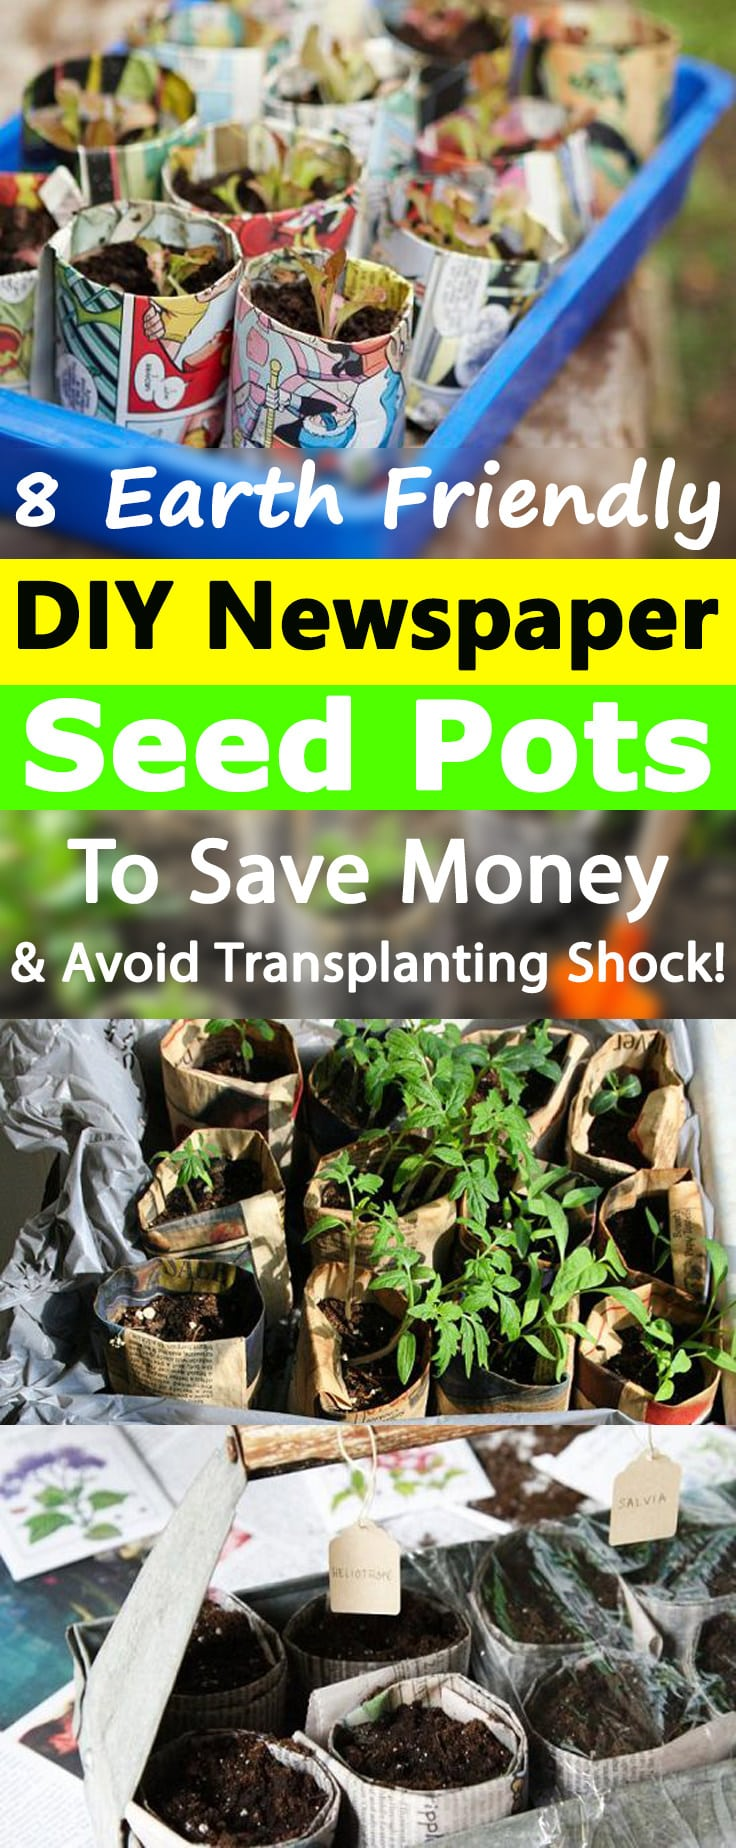 Save money, stop transplanting shock, and go earth-friendly way by creating these free, biodegradable, soil-friendly DIY Newspaper Pots!